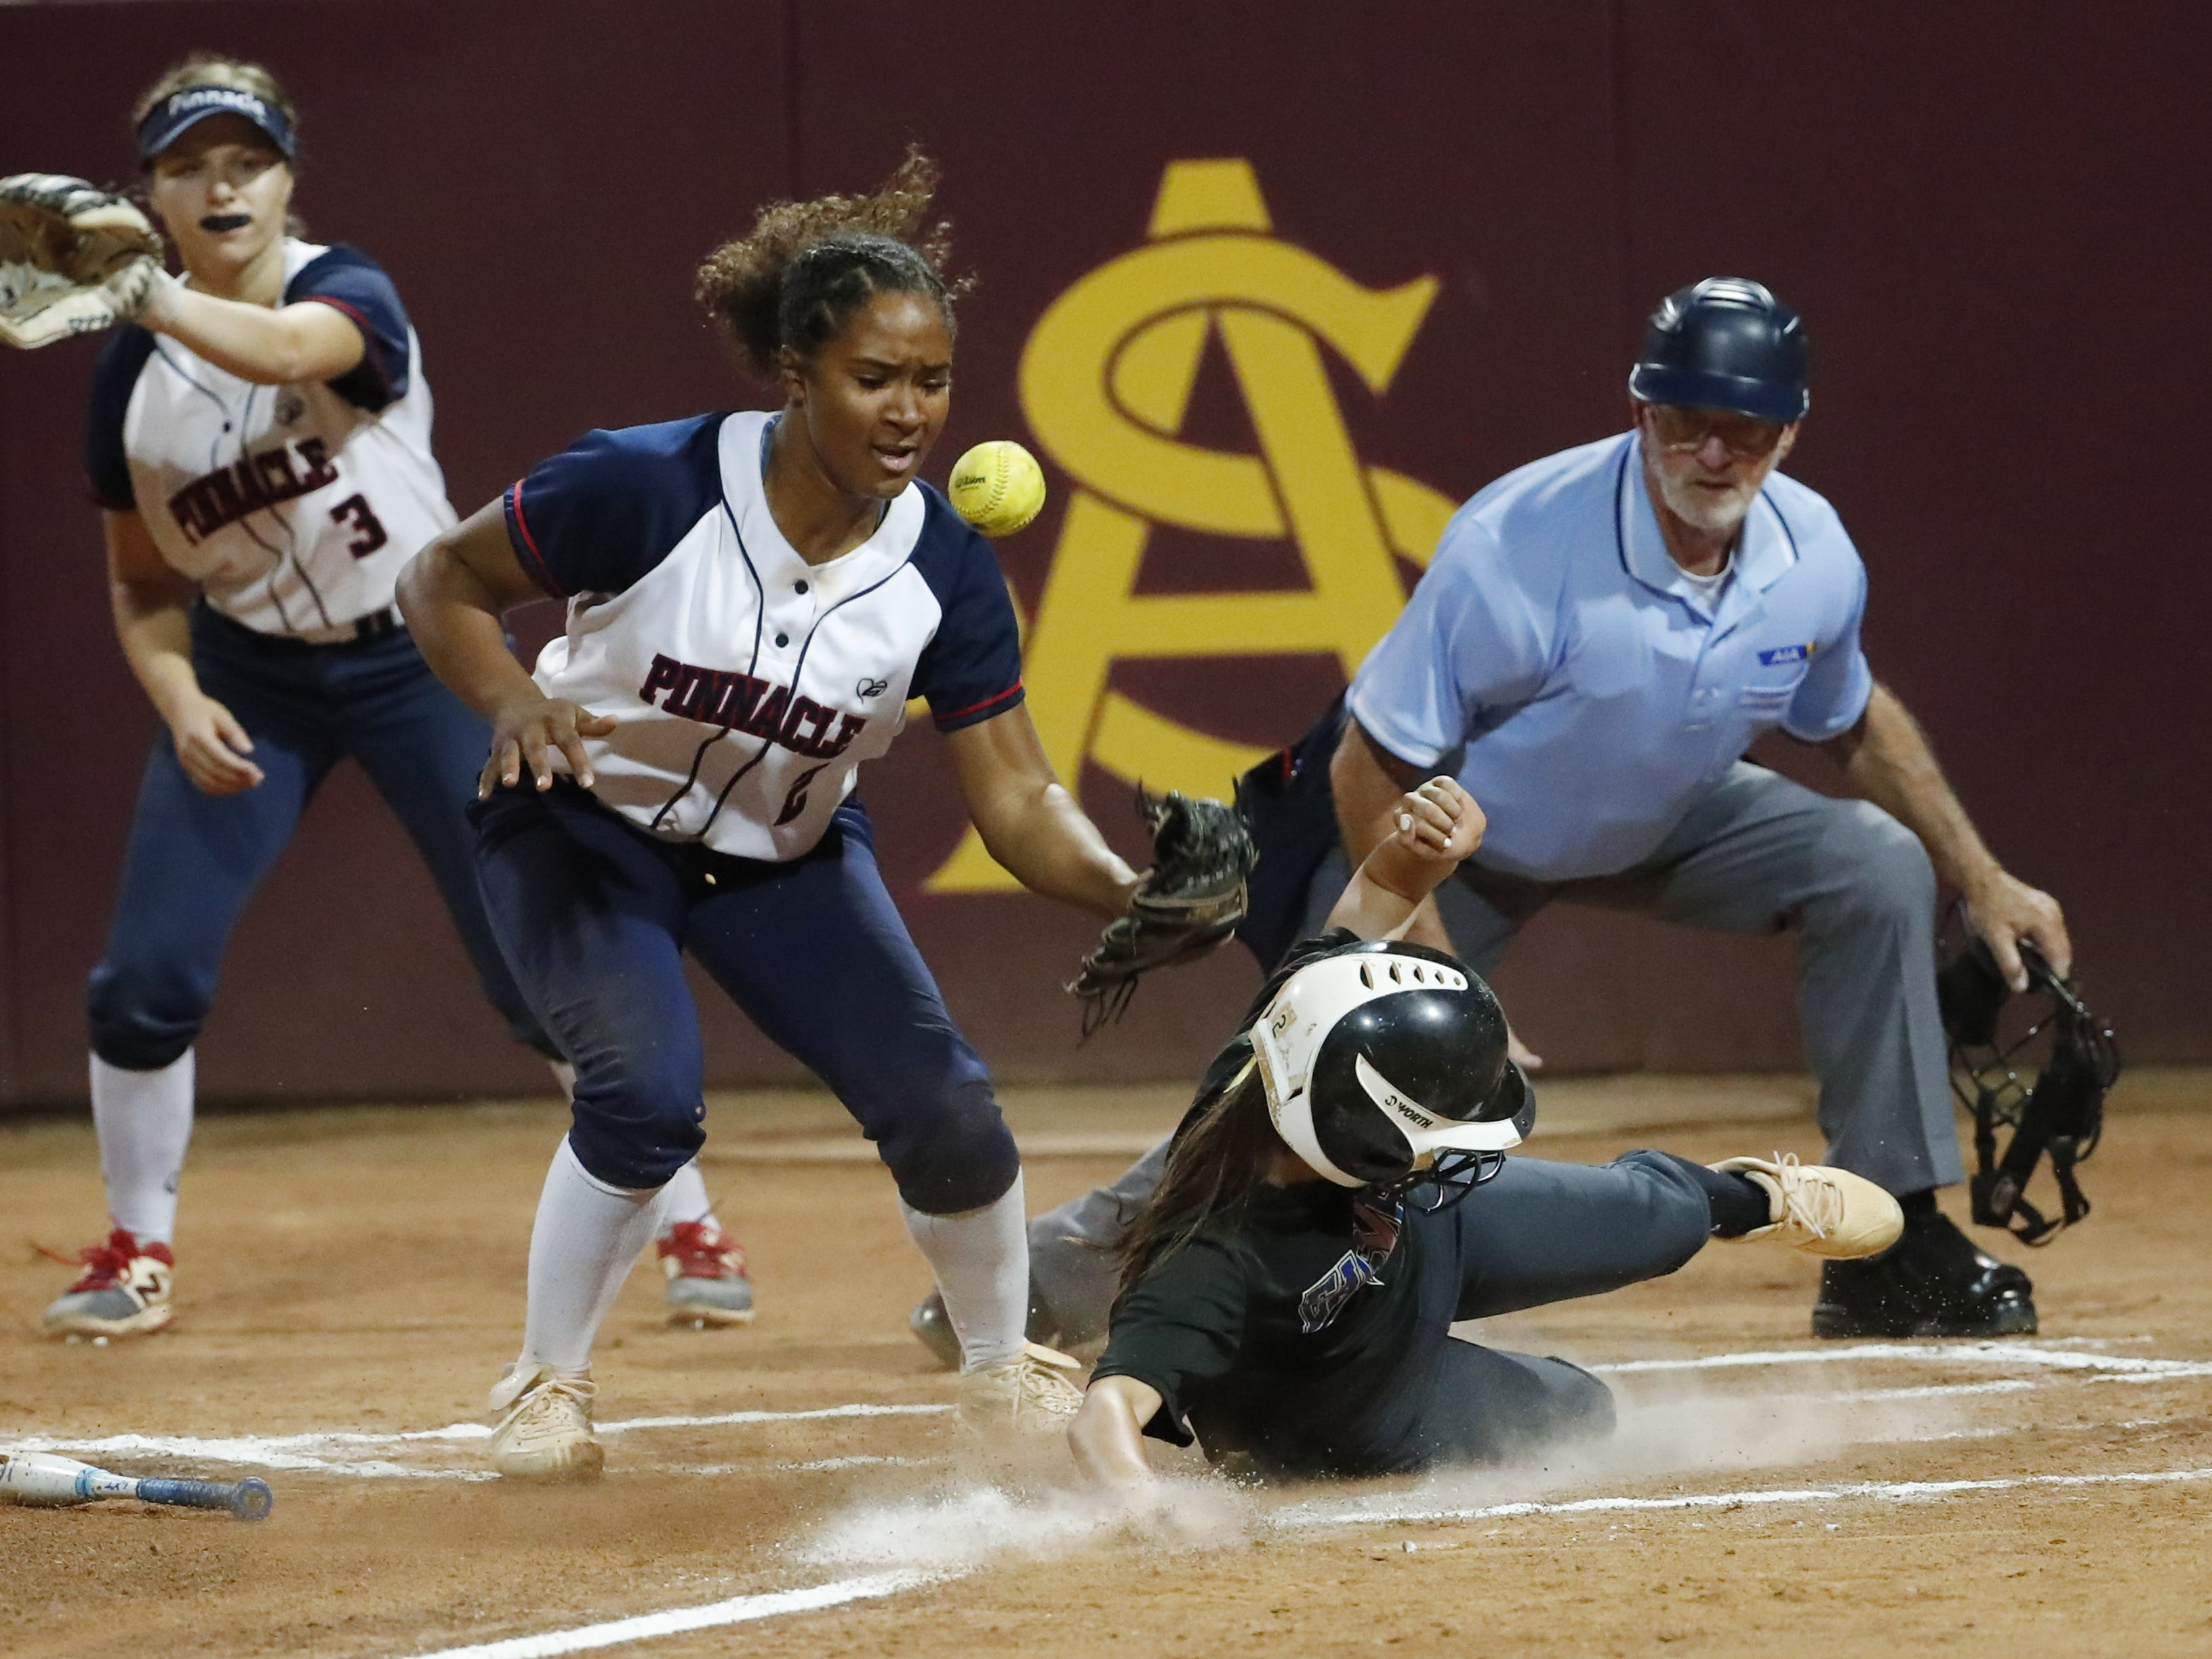 Sandra Day O'Connor's Ashley Herman (2) scores ahead of the tag by Pinnacle pitcher Morgan Smith (2) during the 6A State Softball Championship in Tempe, Ariz. May 13, 2019.